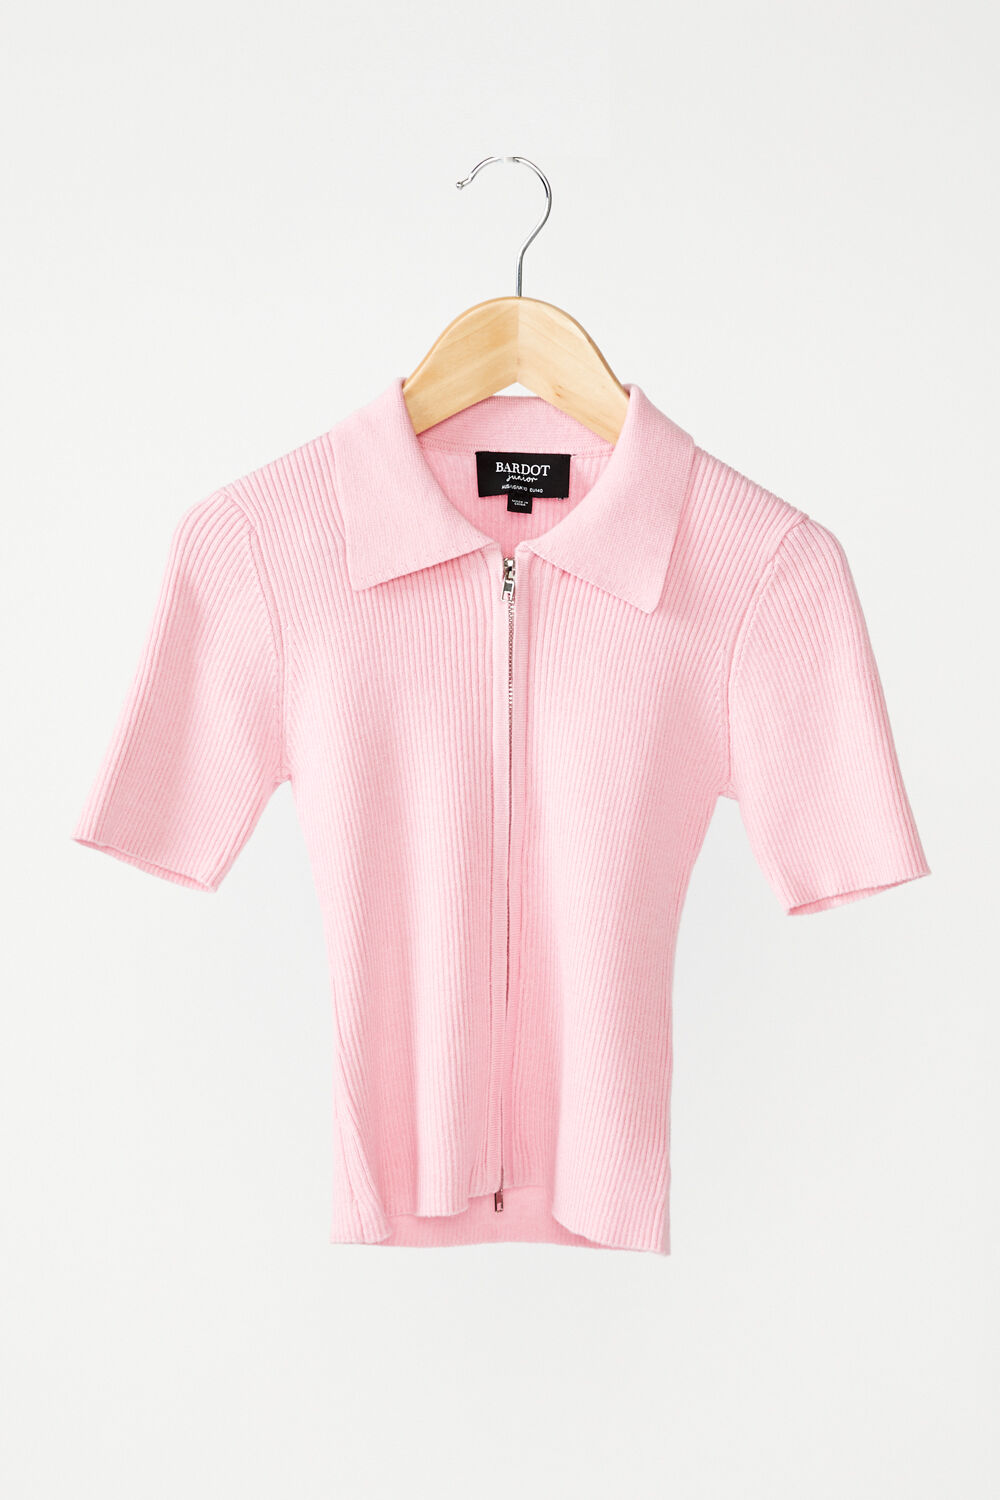 TWEEN GIRL KNIT COLLAR TEE in colour PINK LADY